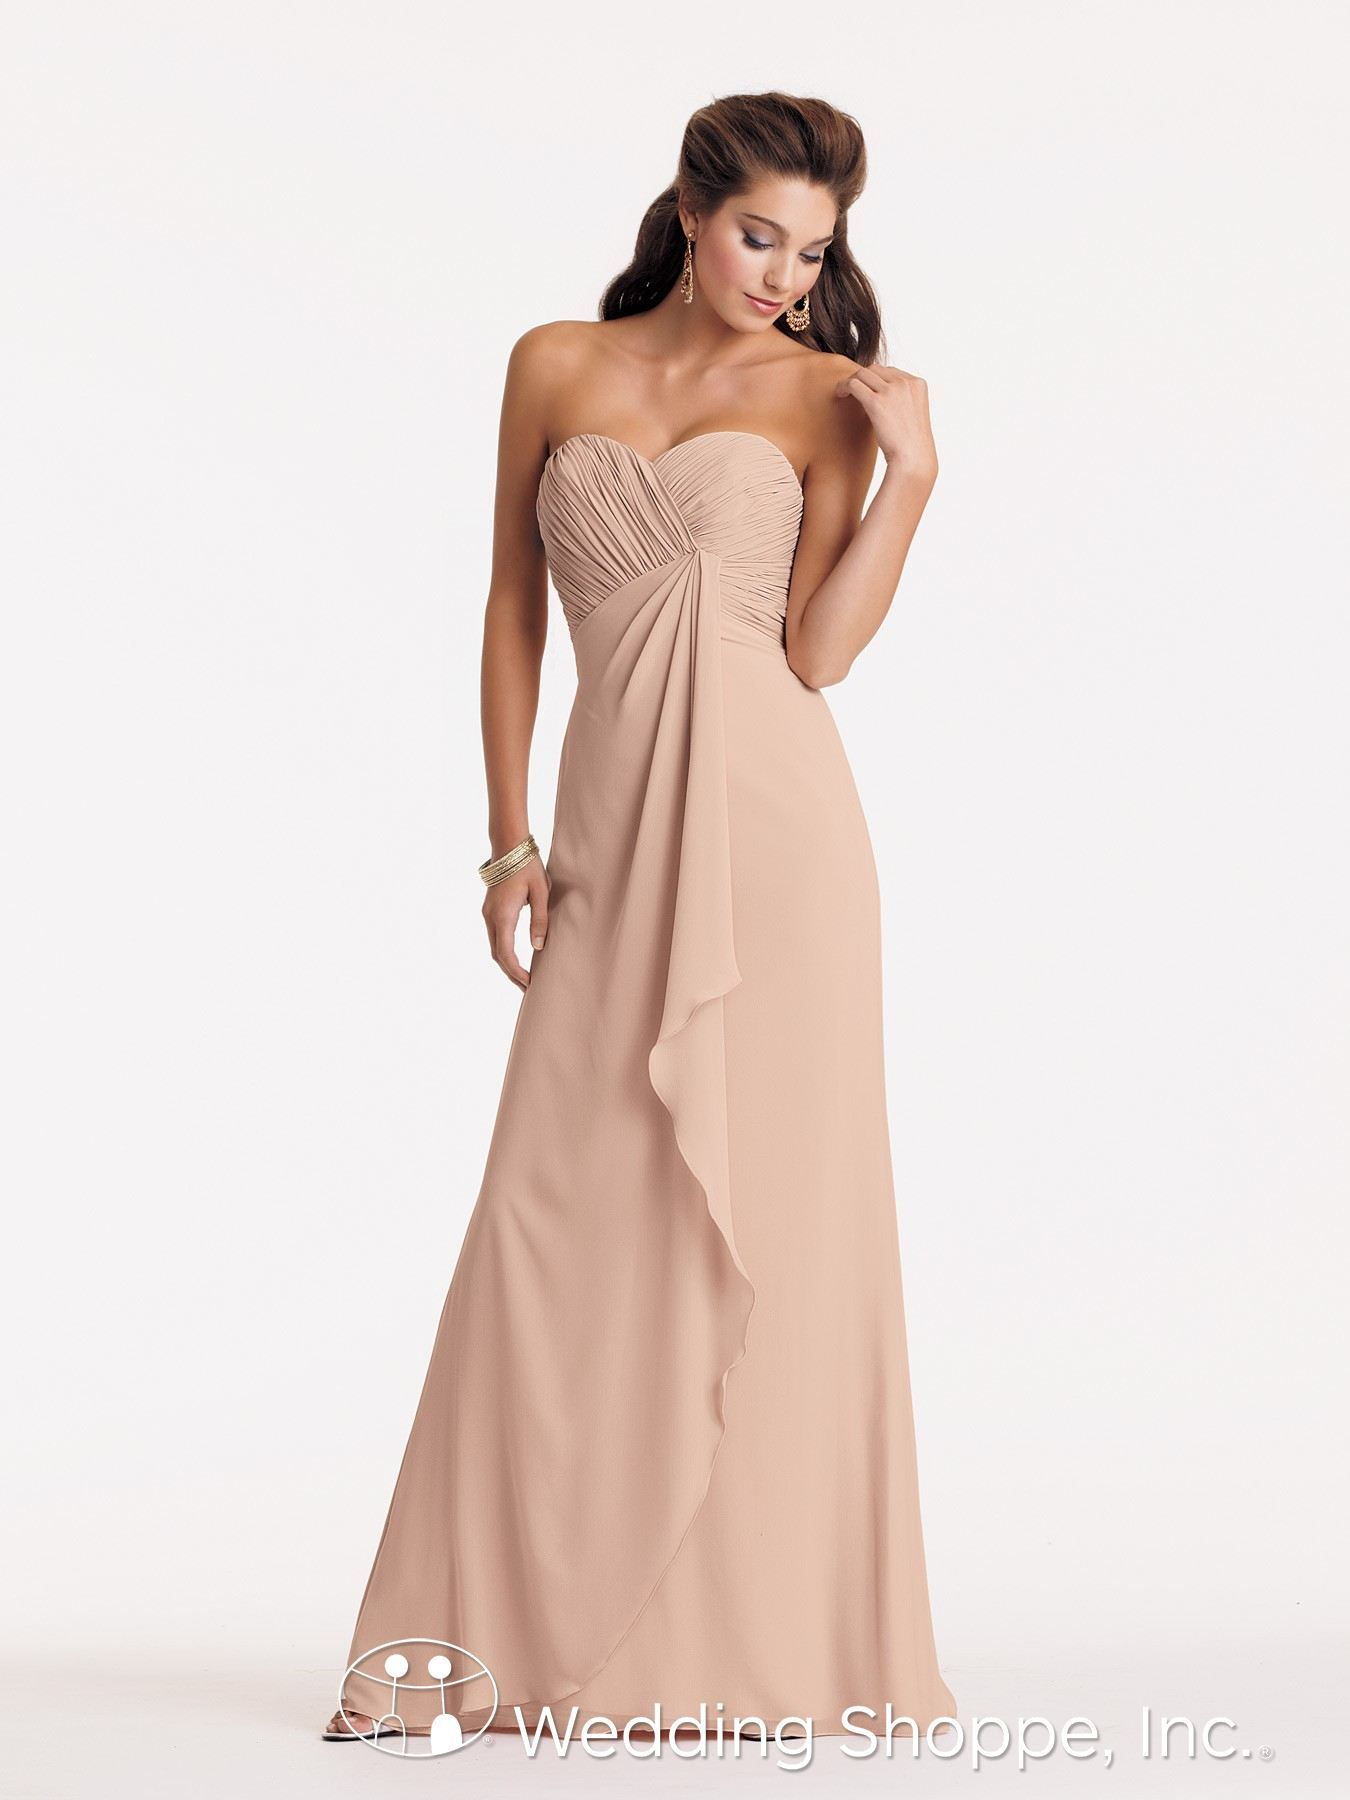 Jordan bridesmaid dress 532 blushing bride pinterest free jordan bridesmaid dress 532 ombrellifo Image collections